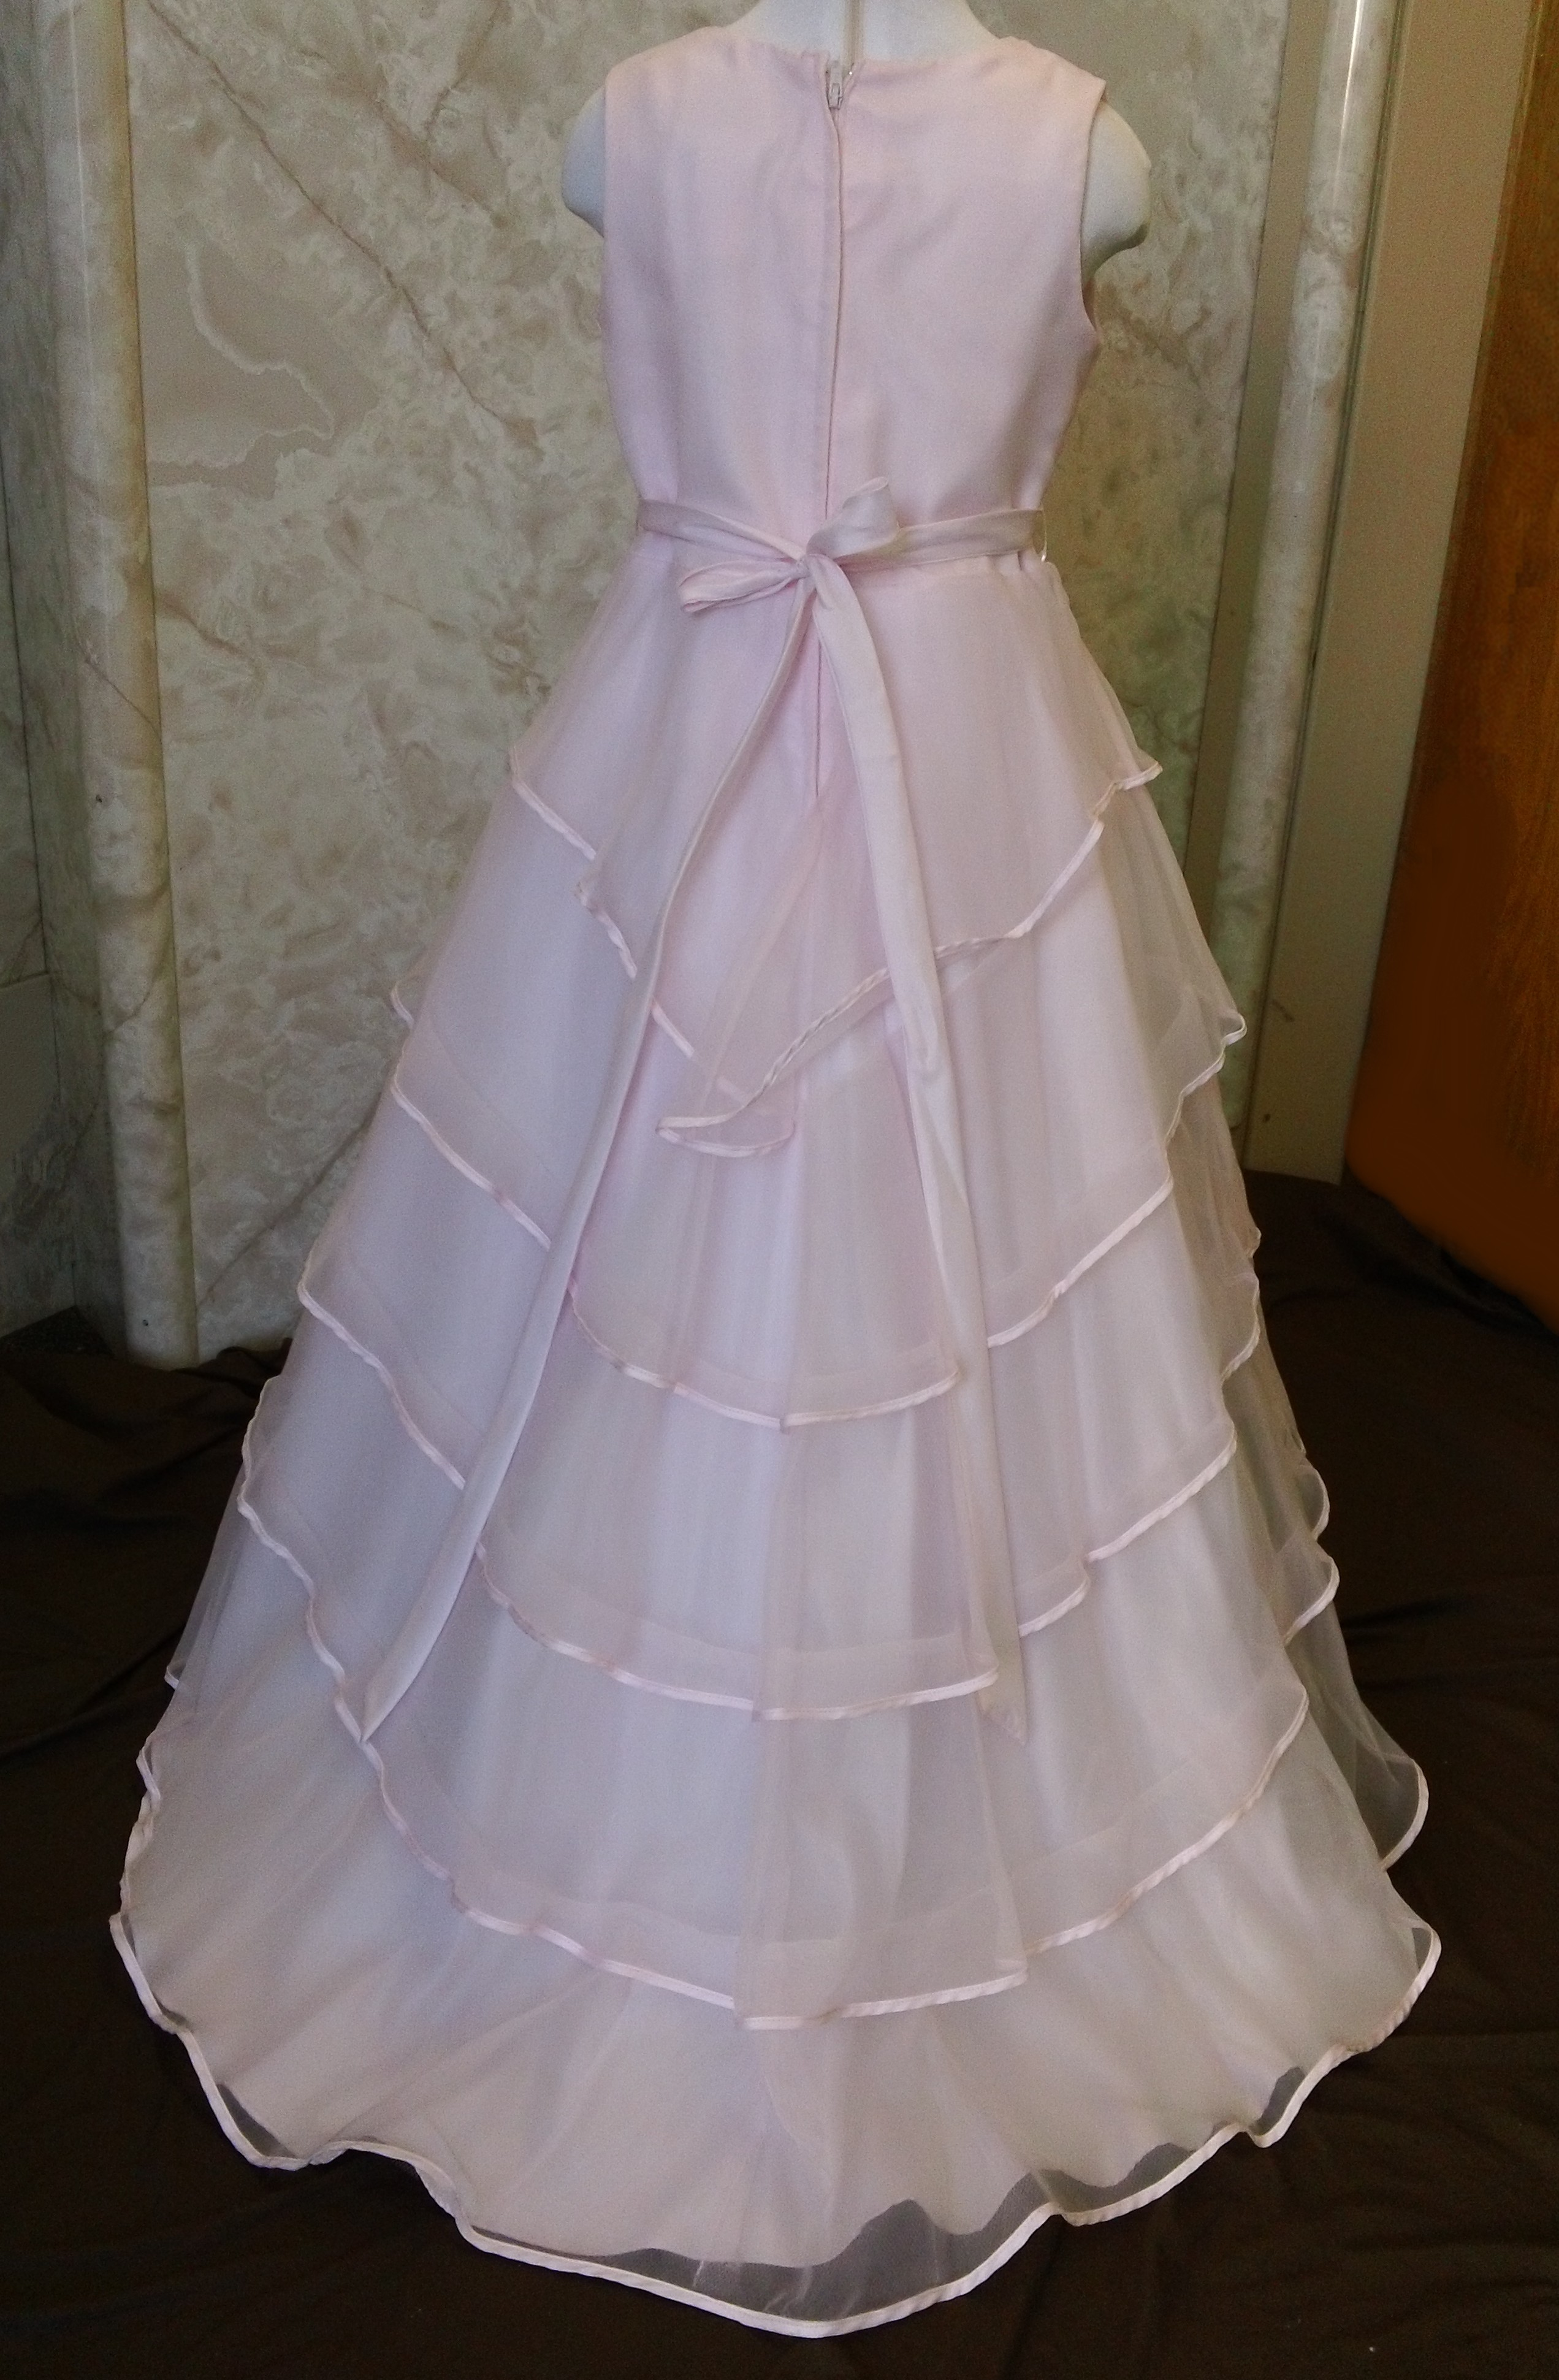 Long sleeveless girls pink dress with 5 tier skirt.  Zipper back, with tie sash.